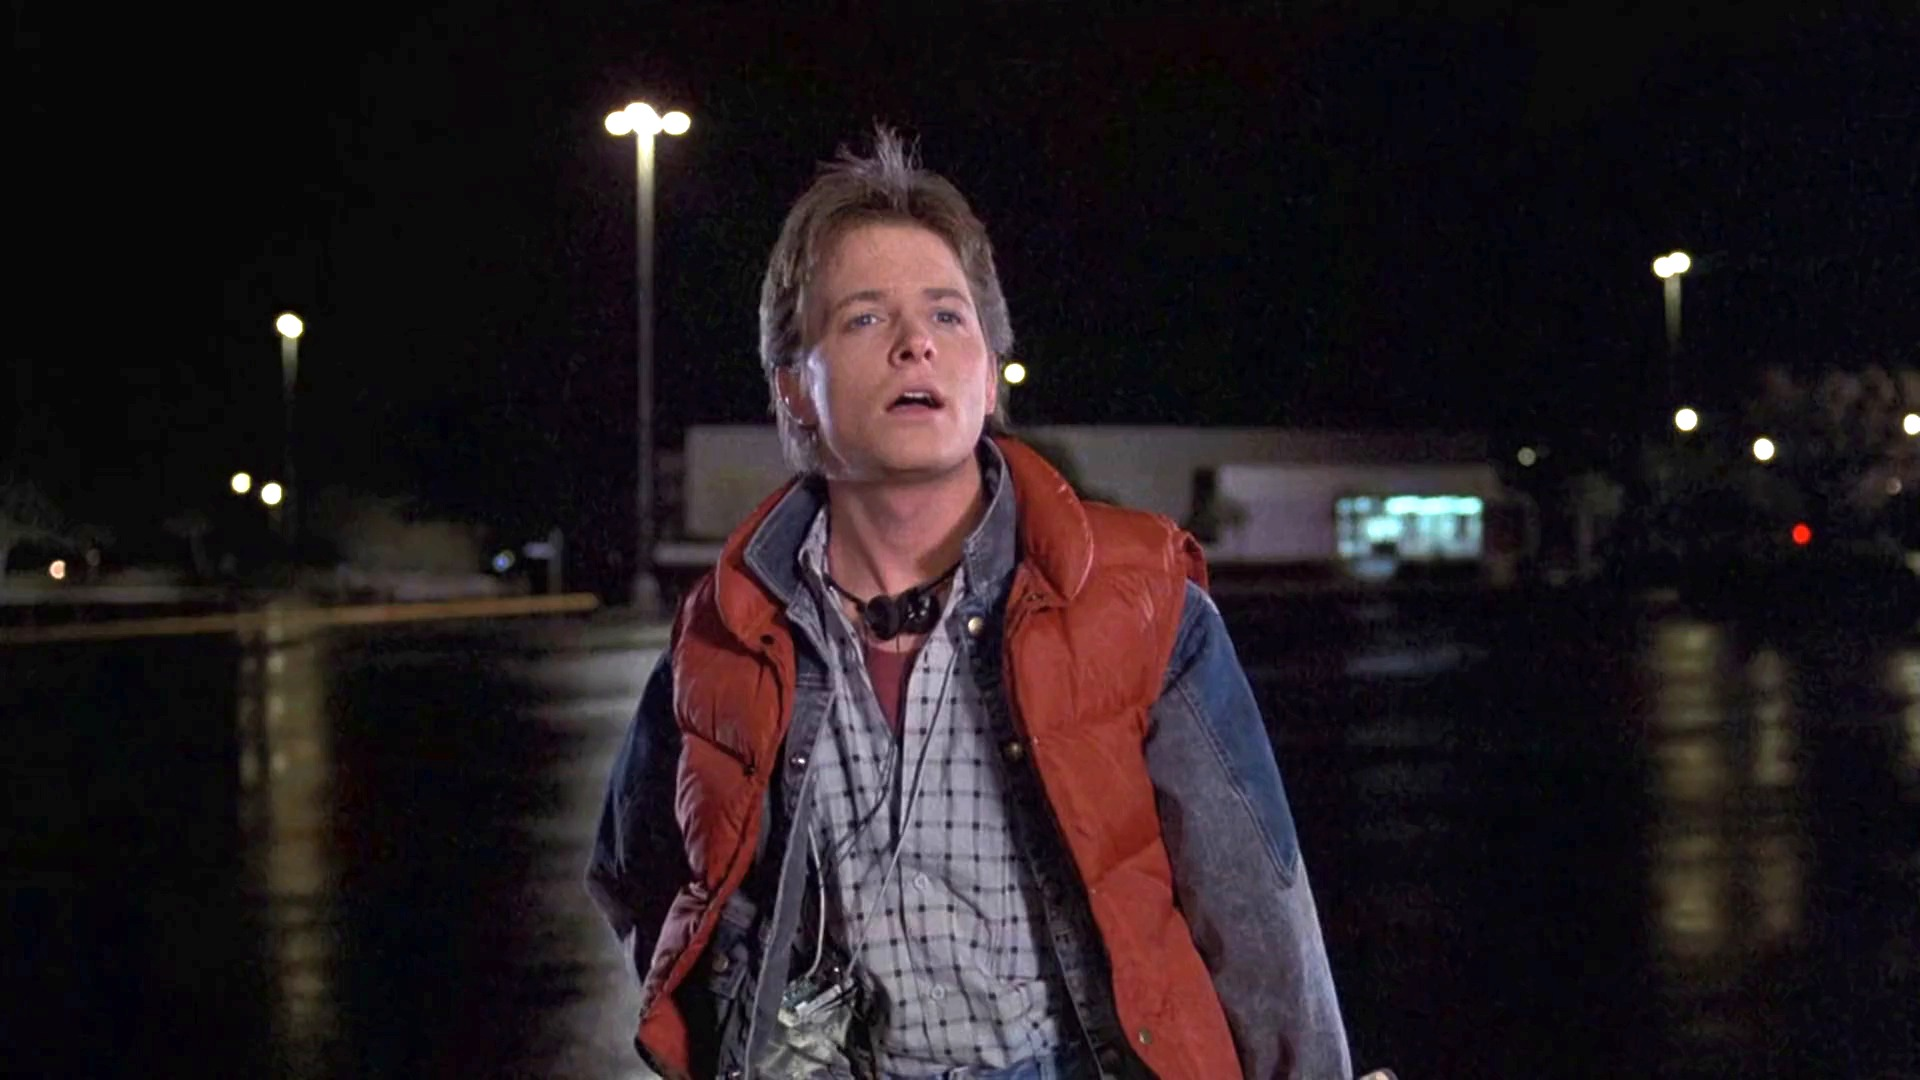 2016 - Page 3 Film-back_to_the_future-1985-marty_mcfly-michael_j_fox-jackets-red_down_vest